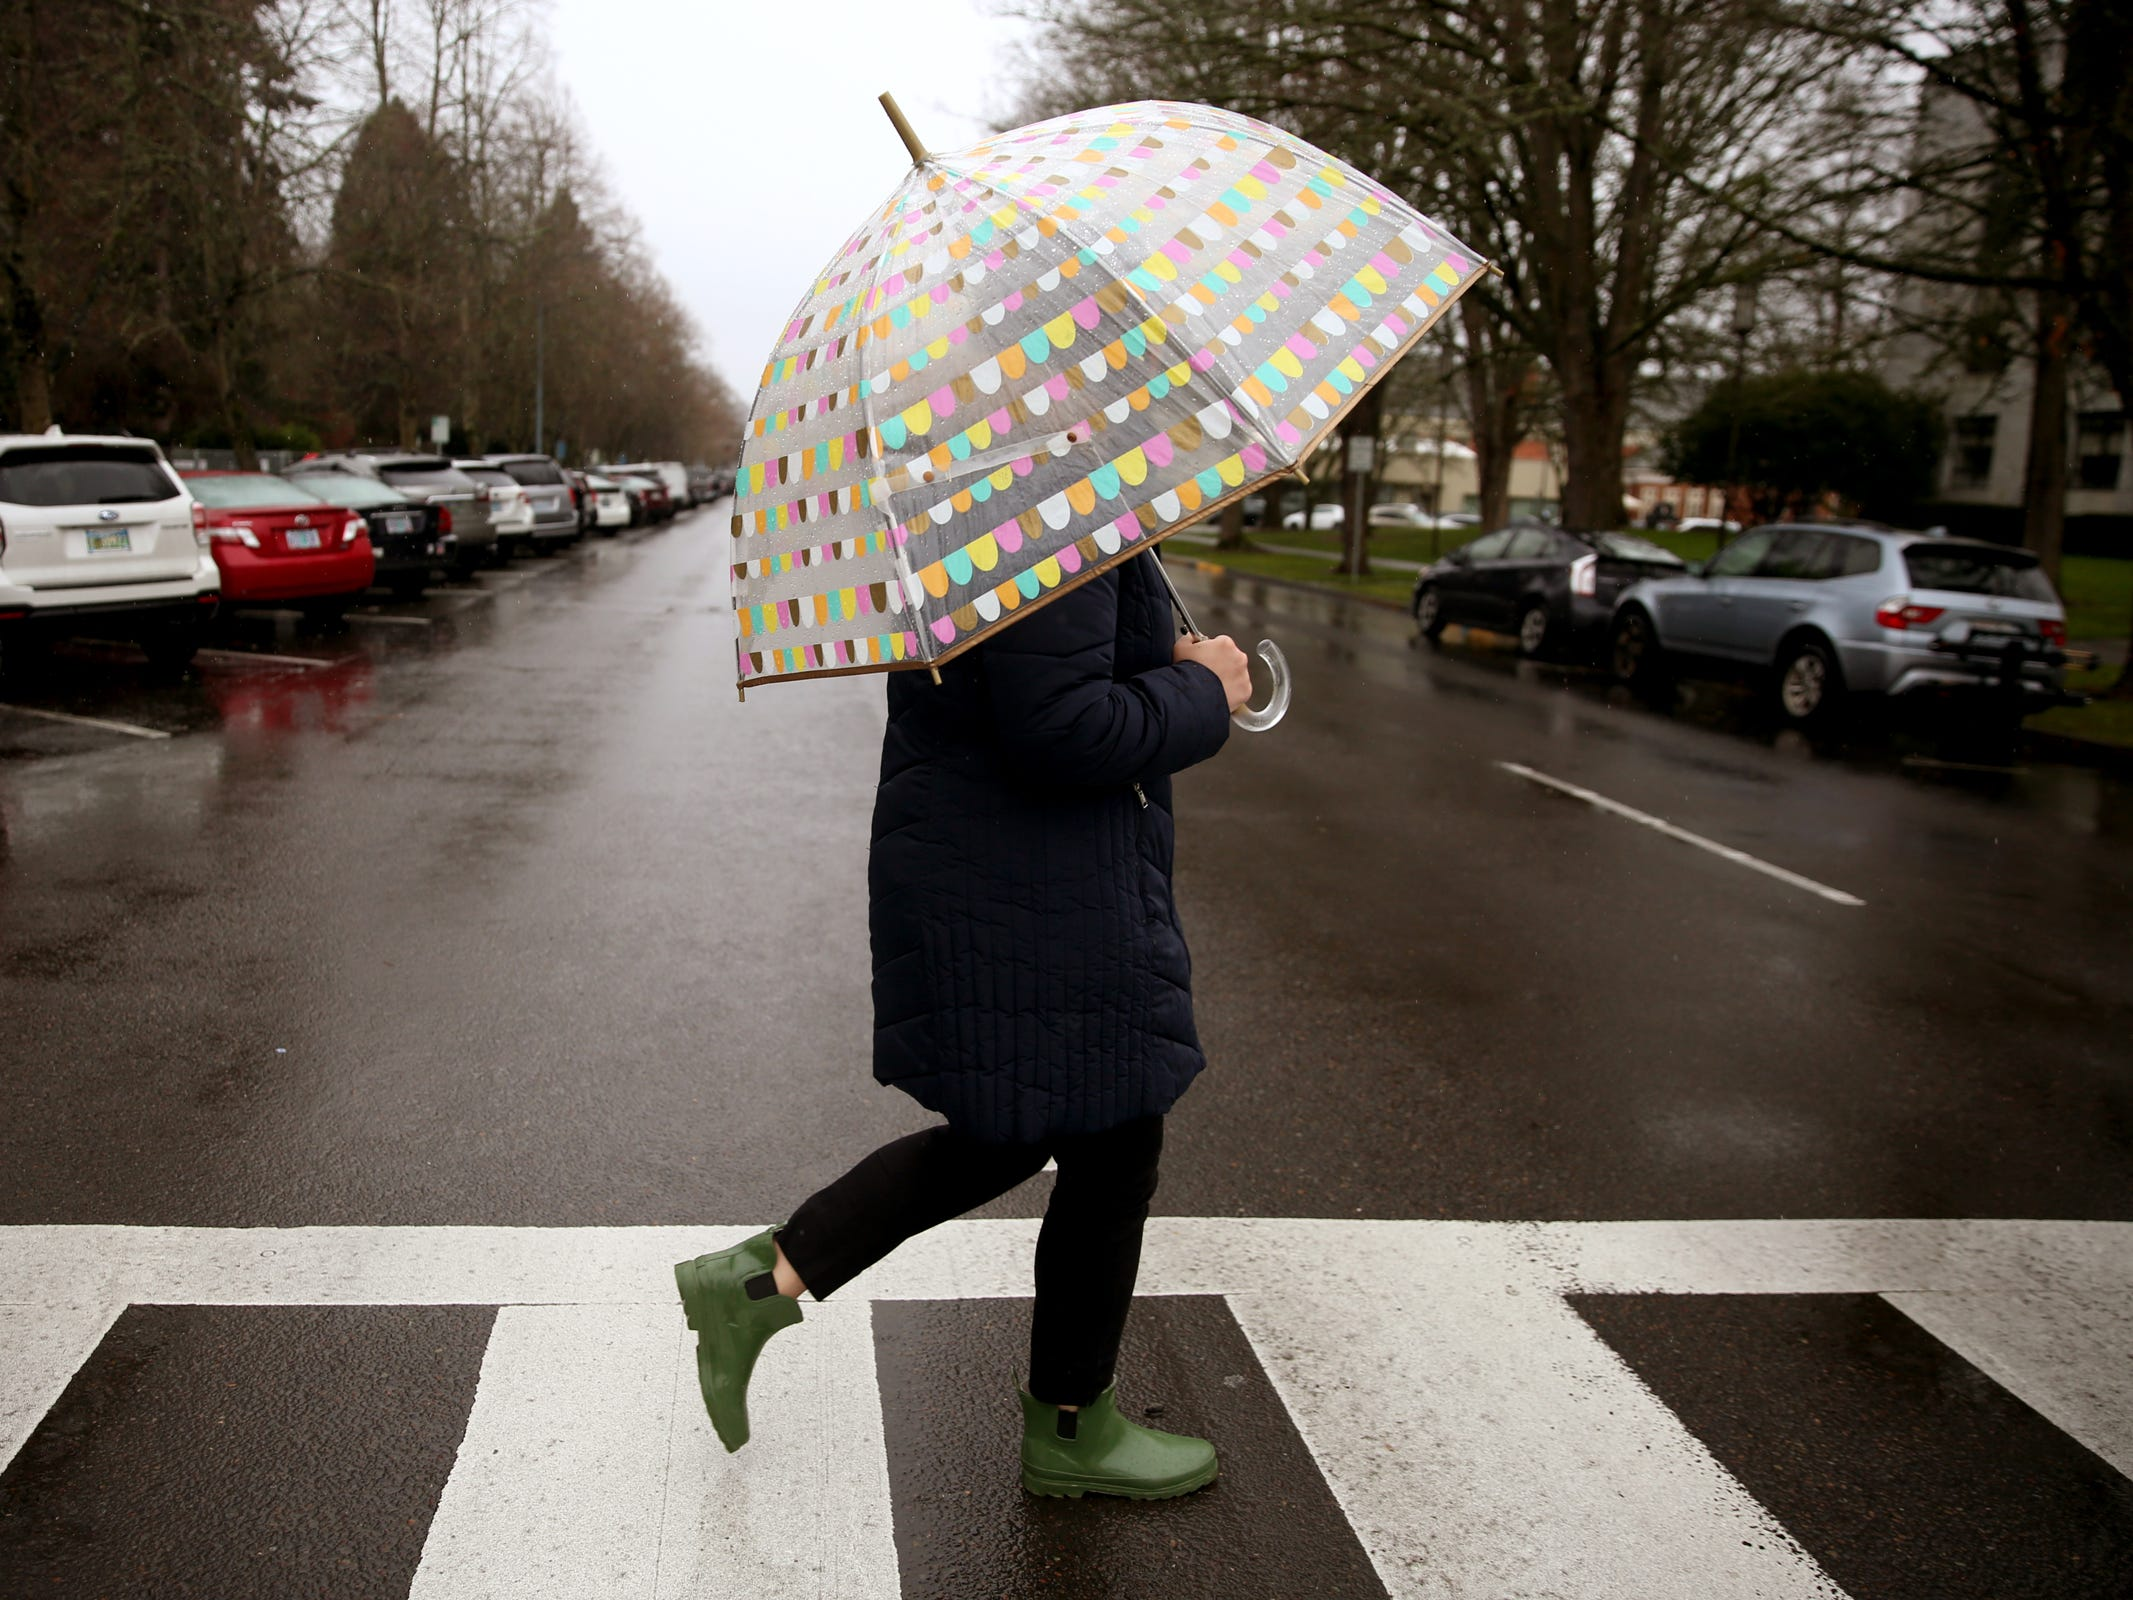 Jessica Wangler walks from the Oregon State Capitol to her son's school, St. Joseph Catholic School, so she can monitor his insulin dosage during his lunch break in Salem on Tuesday, Feb. 12, 2019. Wangler works in Sen. Peter Courtney's office, and when he heard her story he introduced a bill to allow people to get emergency insulin from the pharmacy.